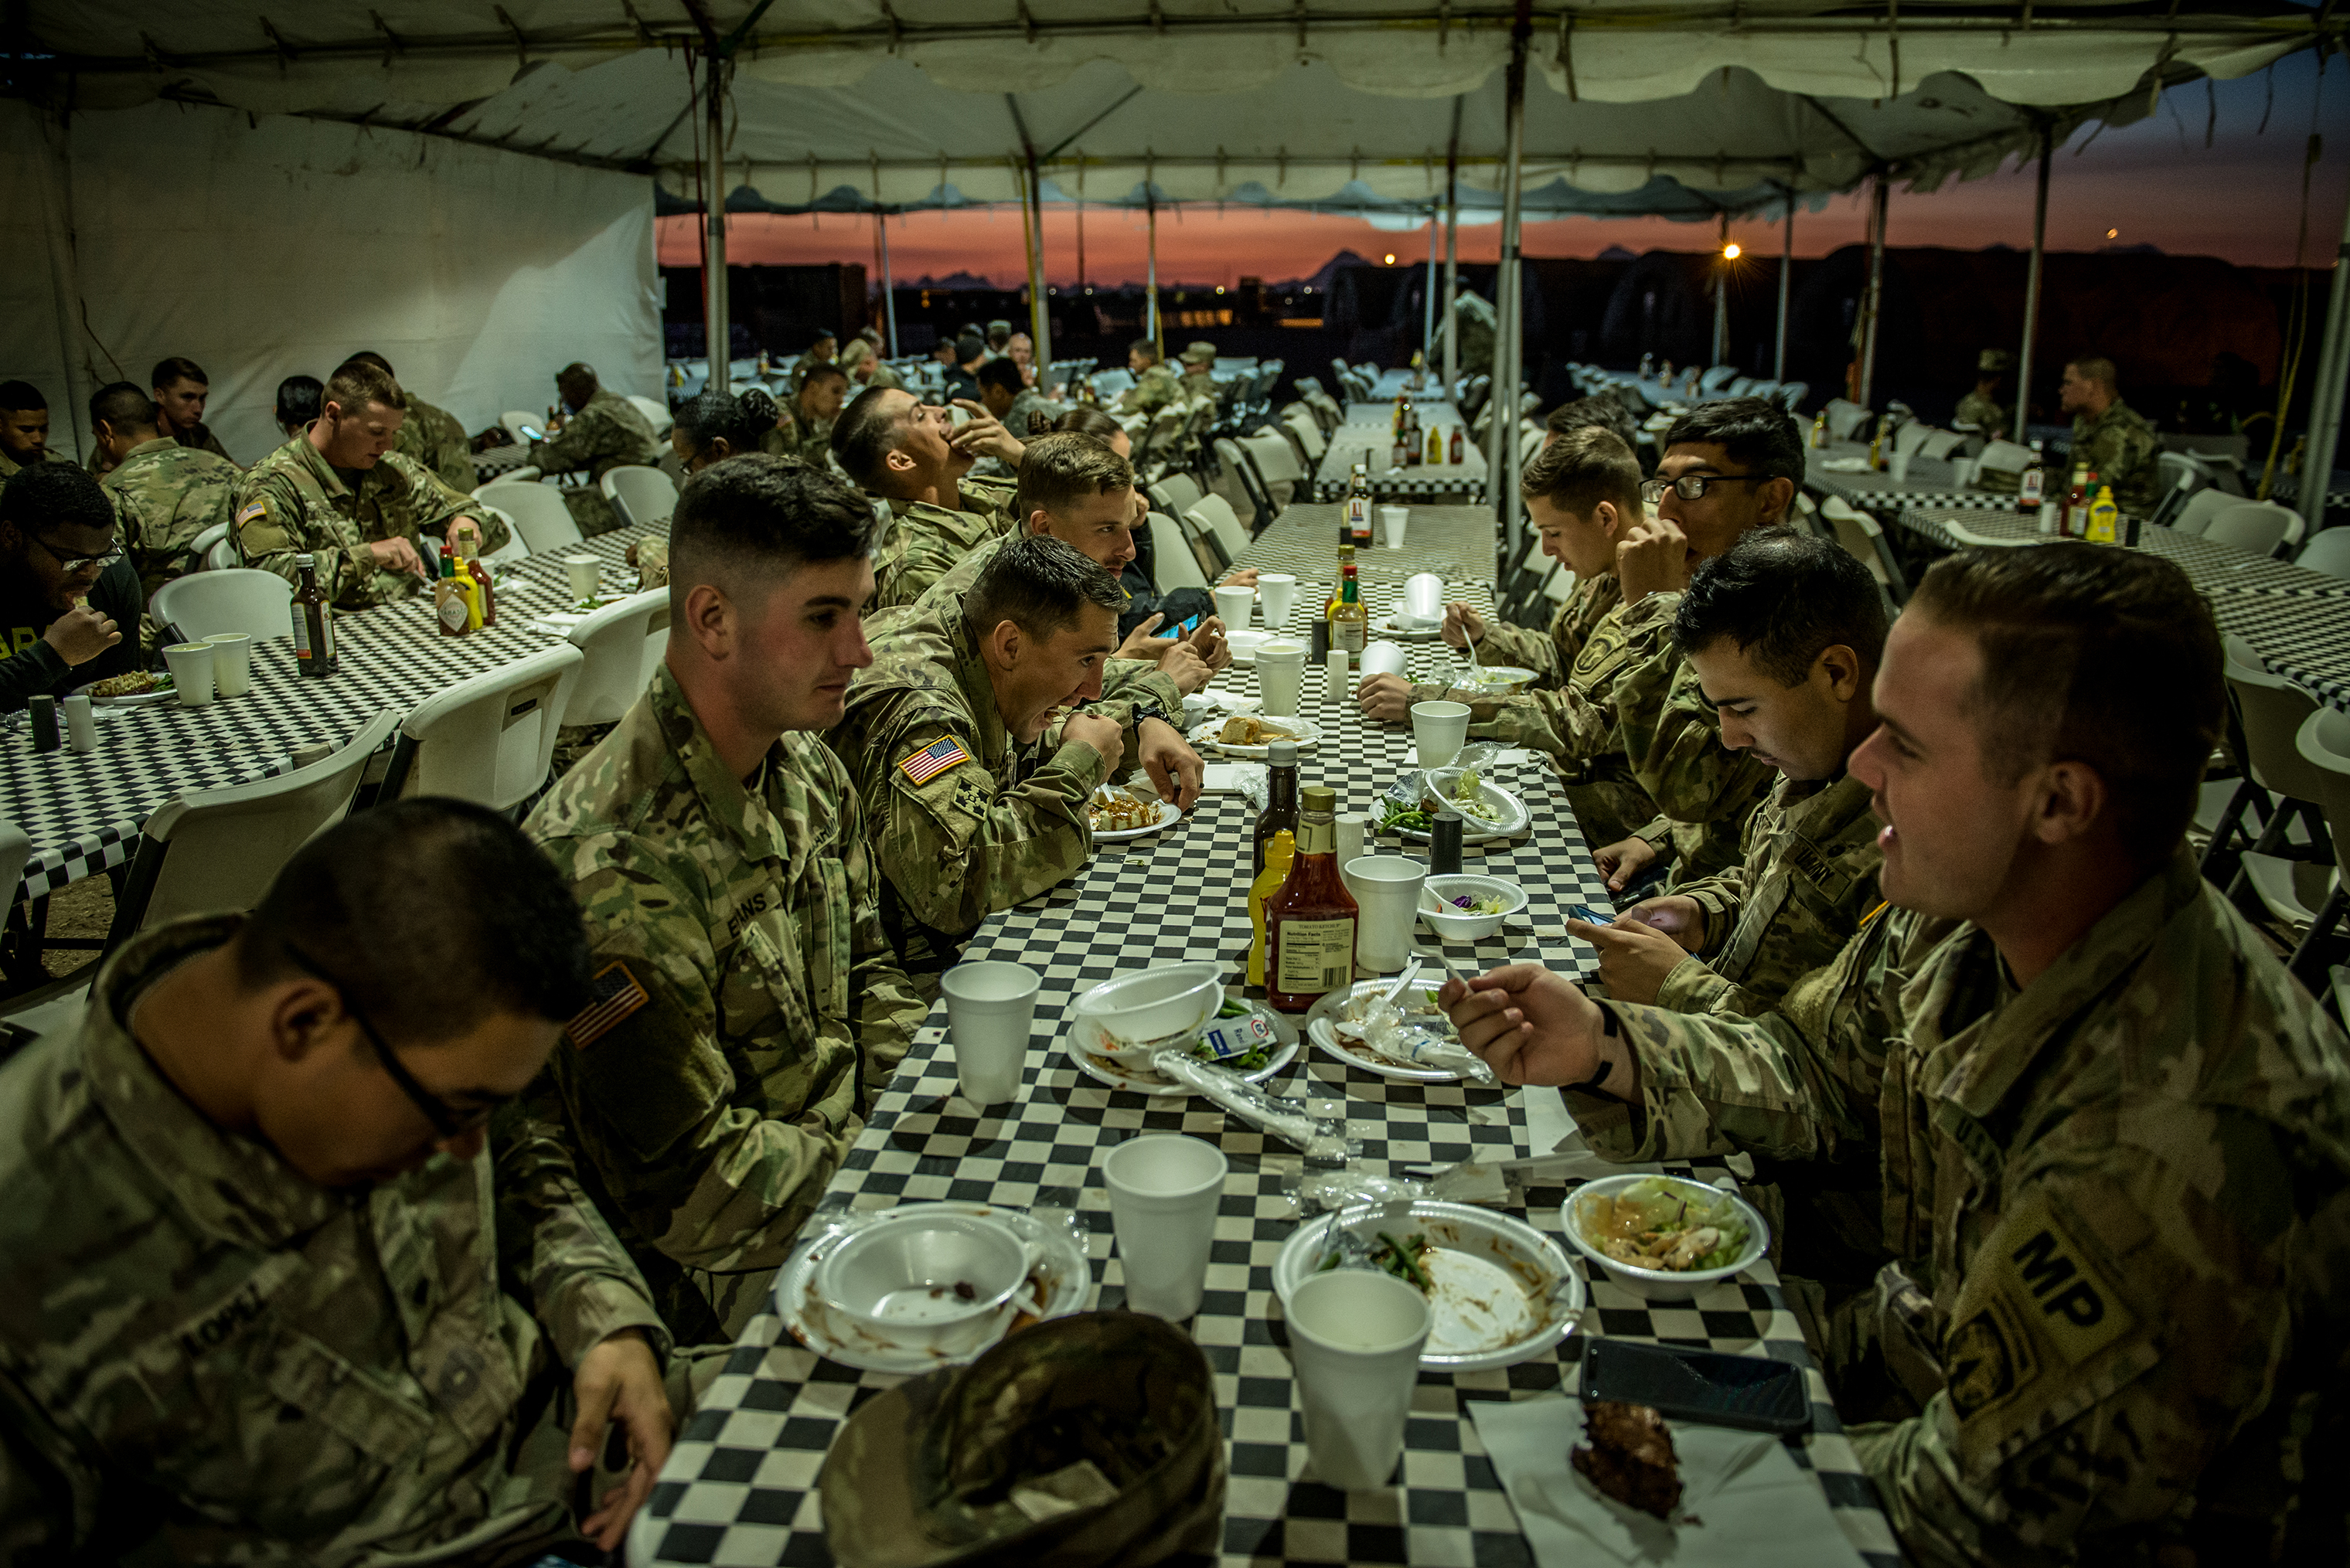 Soldiers eat dinner in the chow tent, where a Thanksgiving meal would be served, in Sunglow City, an outpost constructed in Tucson, Ariz.